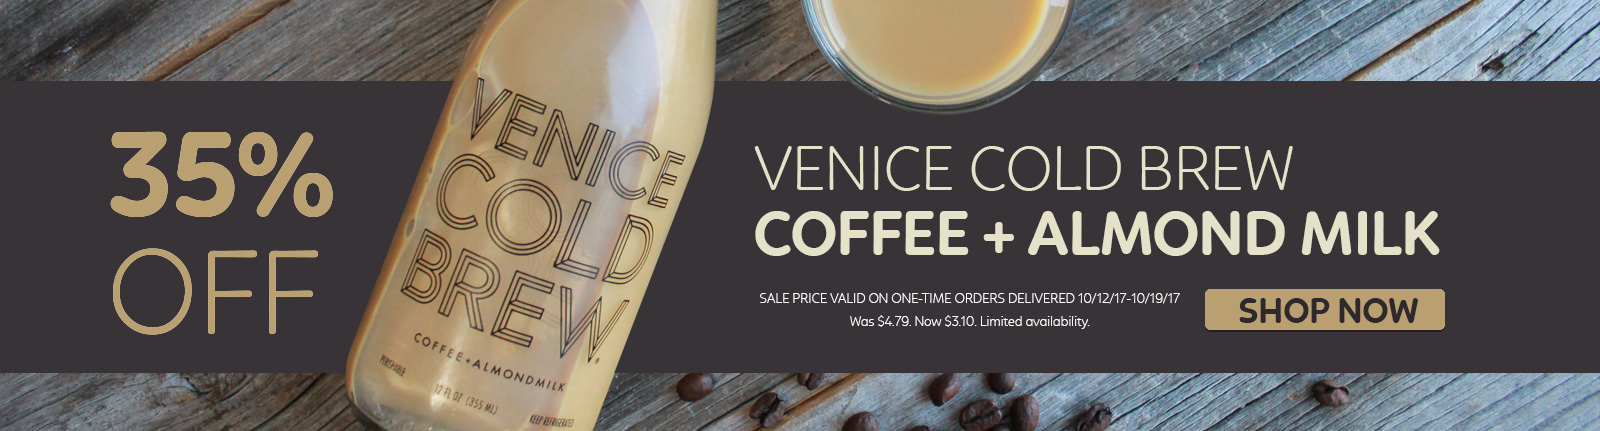 Venice Cold Brew 35% Off